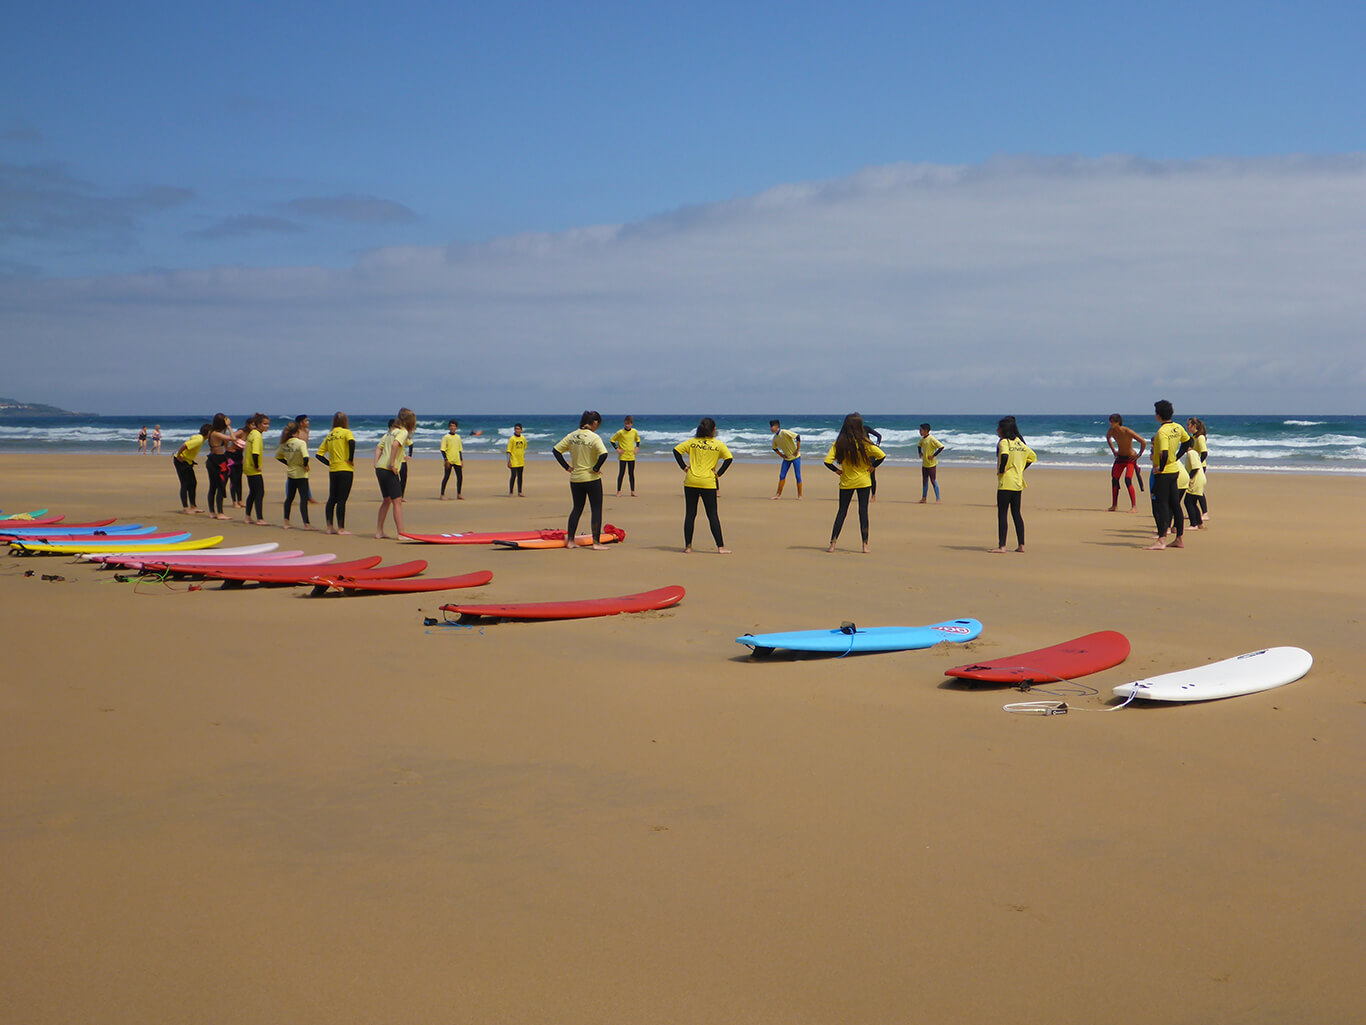 Surfcamp Irish Summer Camp in santoña, Cantabria, Spain